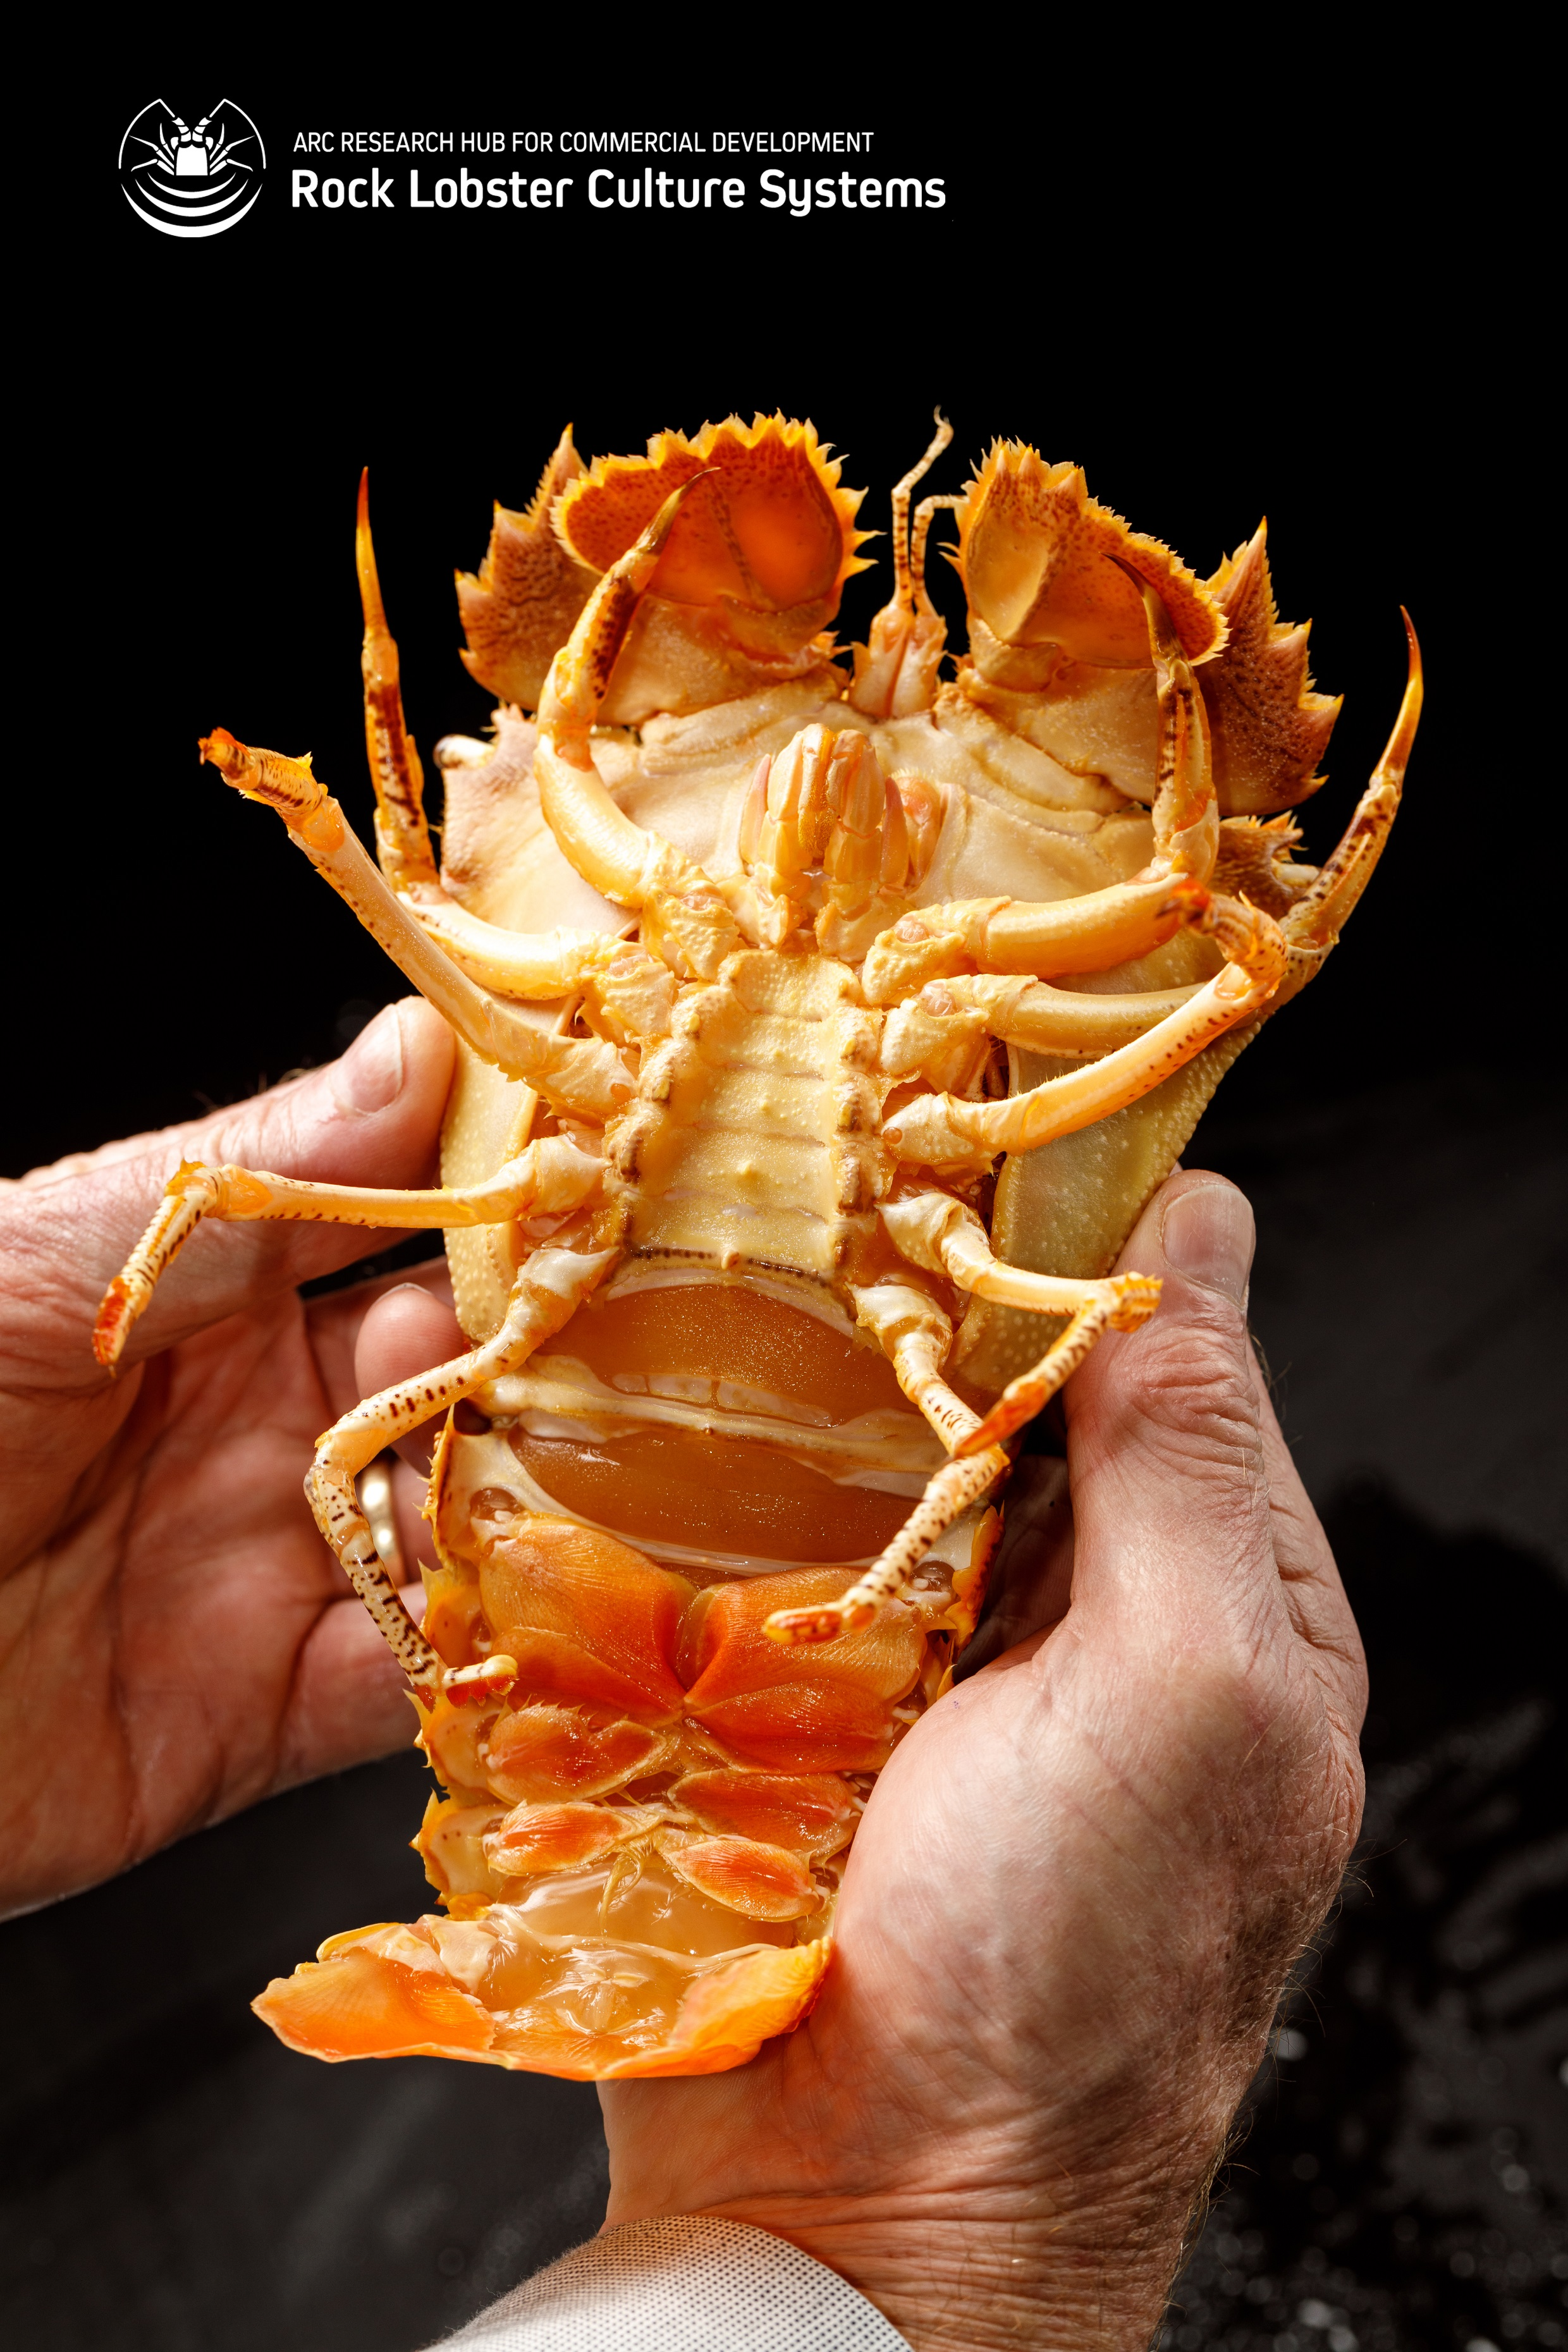 Breed Moreton Bay Bugs Commercially ...